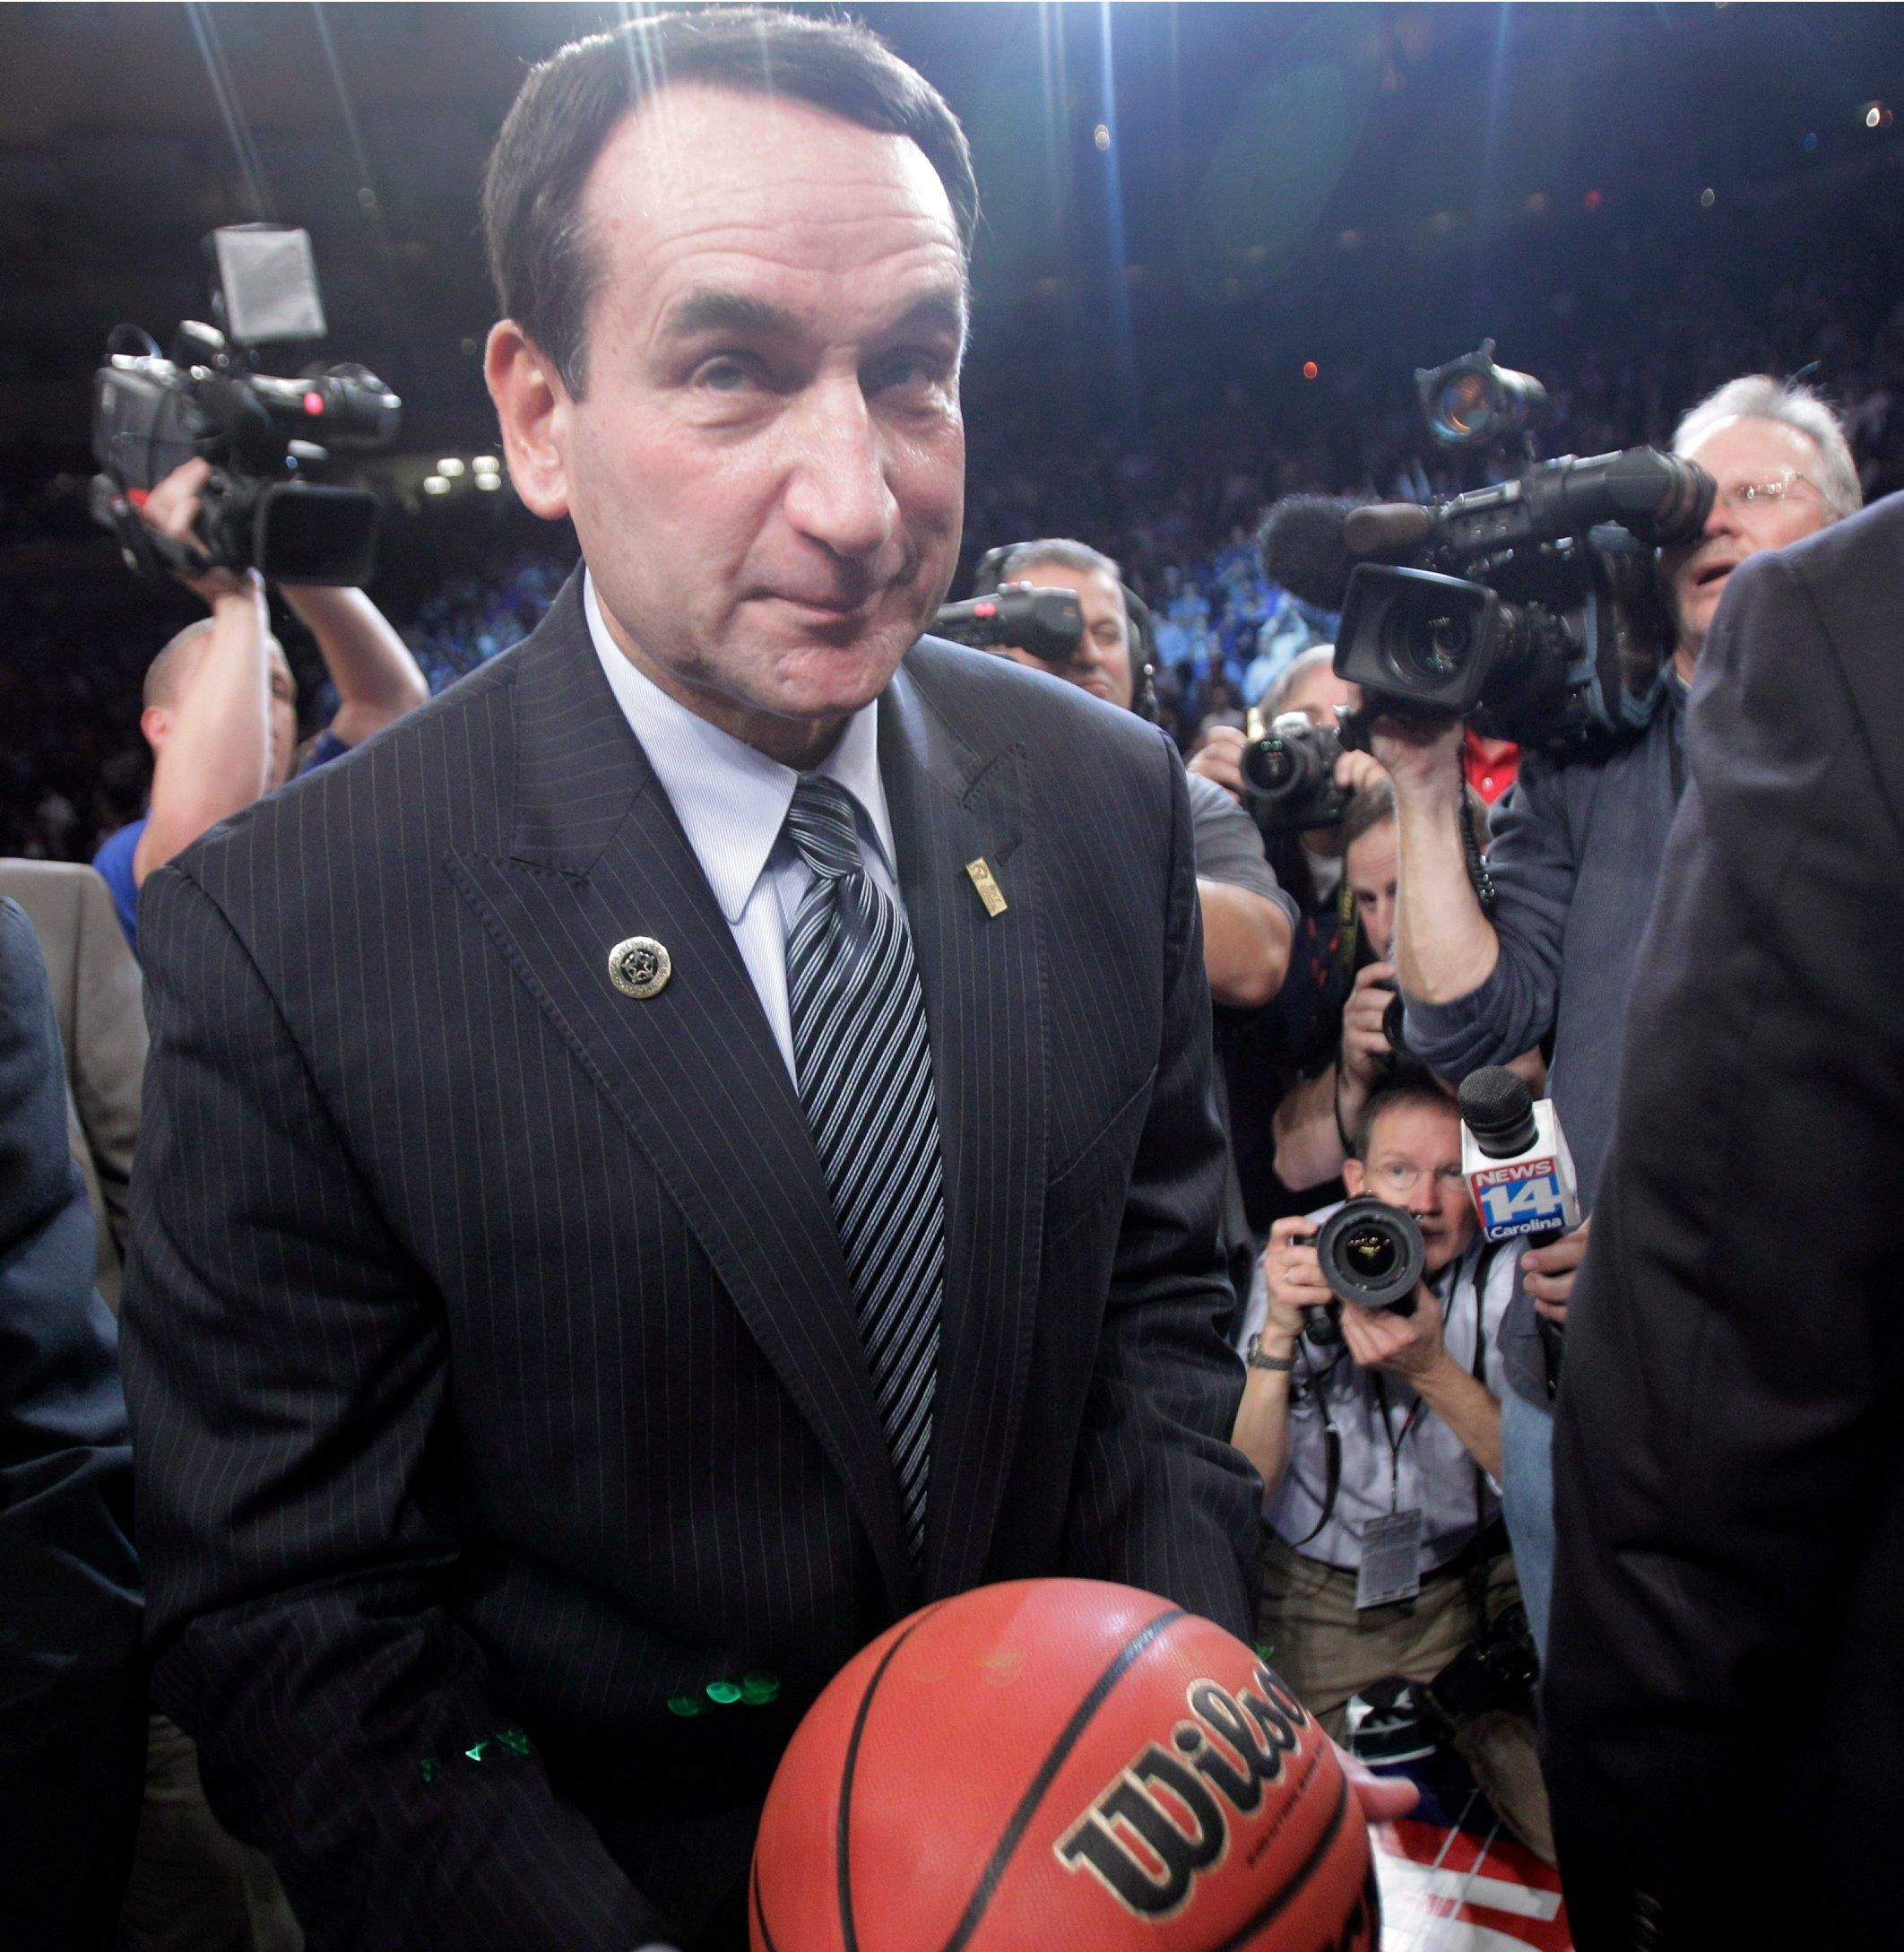 coach k vs coach knight Coach k's and coach knight's careers have been intertwined since krzyzewski played for knight at the us military academy in the late 1960s coach k's first job in college basketball came when he was offered a graduate assistant position by knight at the university of indiana and, like knight, krzyzewski's first head coaching job was at.